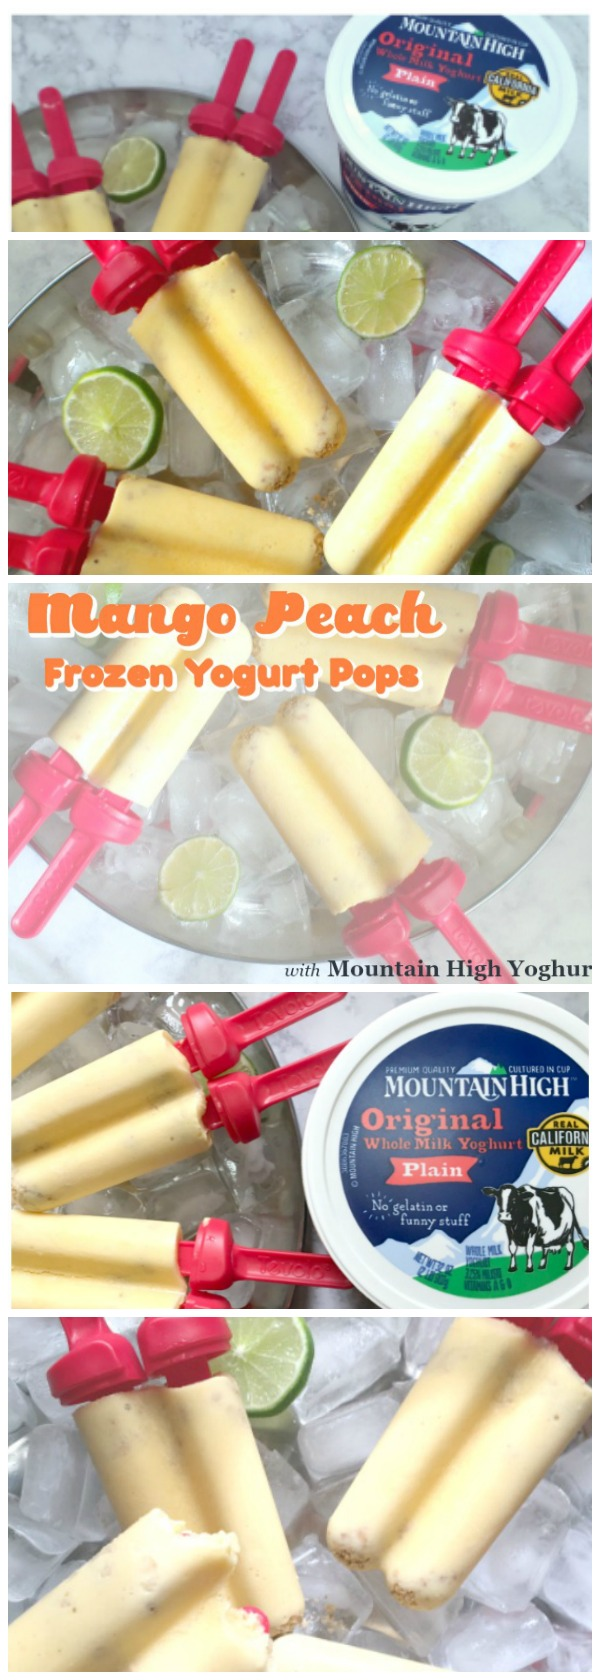 Frozen Yogurt Mango Peach Pops with Mountain High Yoghurt via Atypical Familia by Lisa Quinones Fontanez